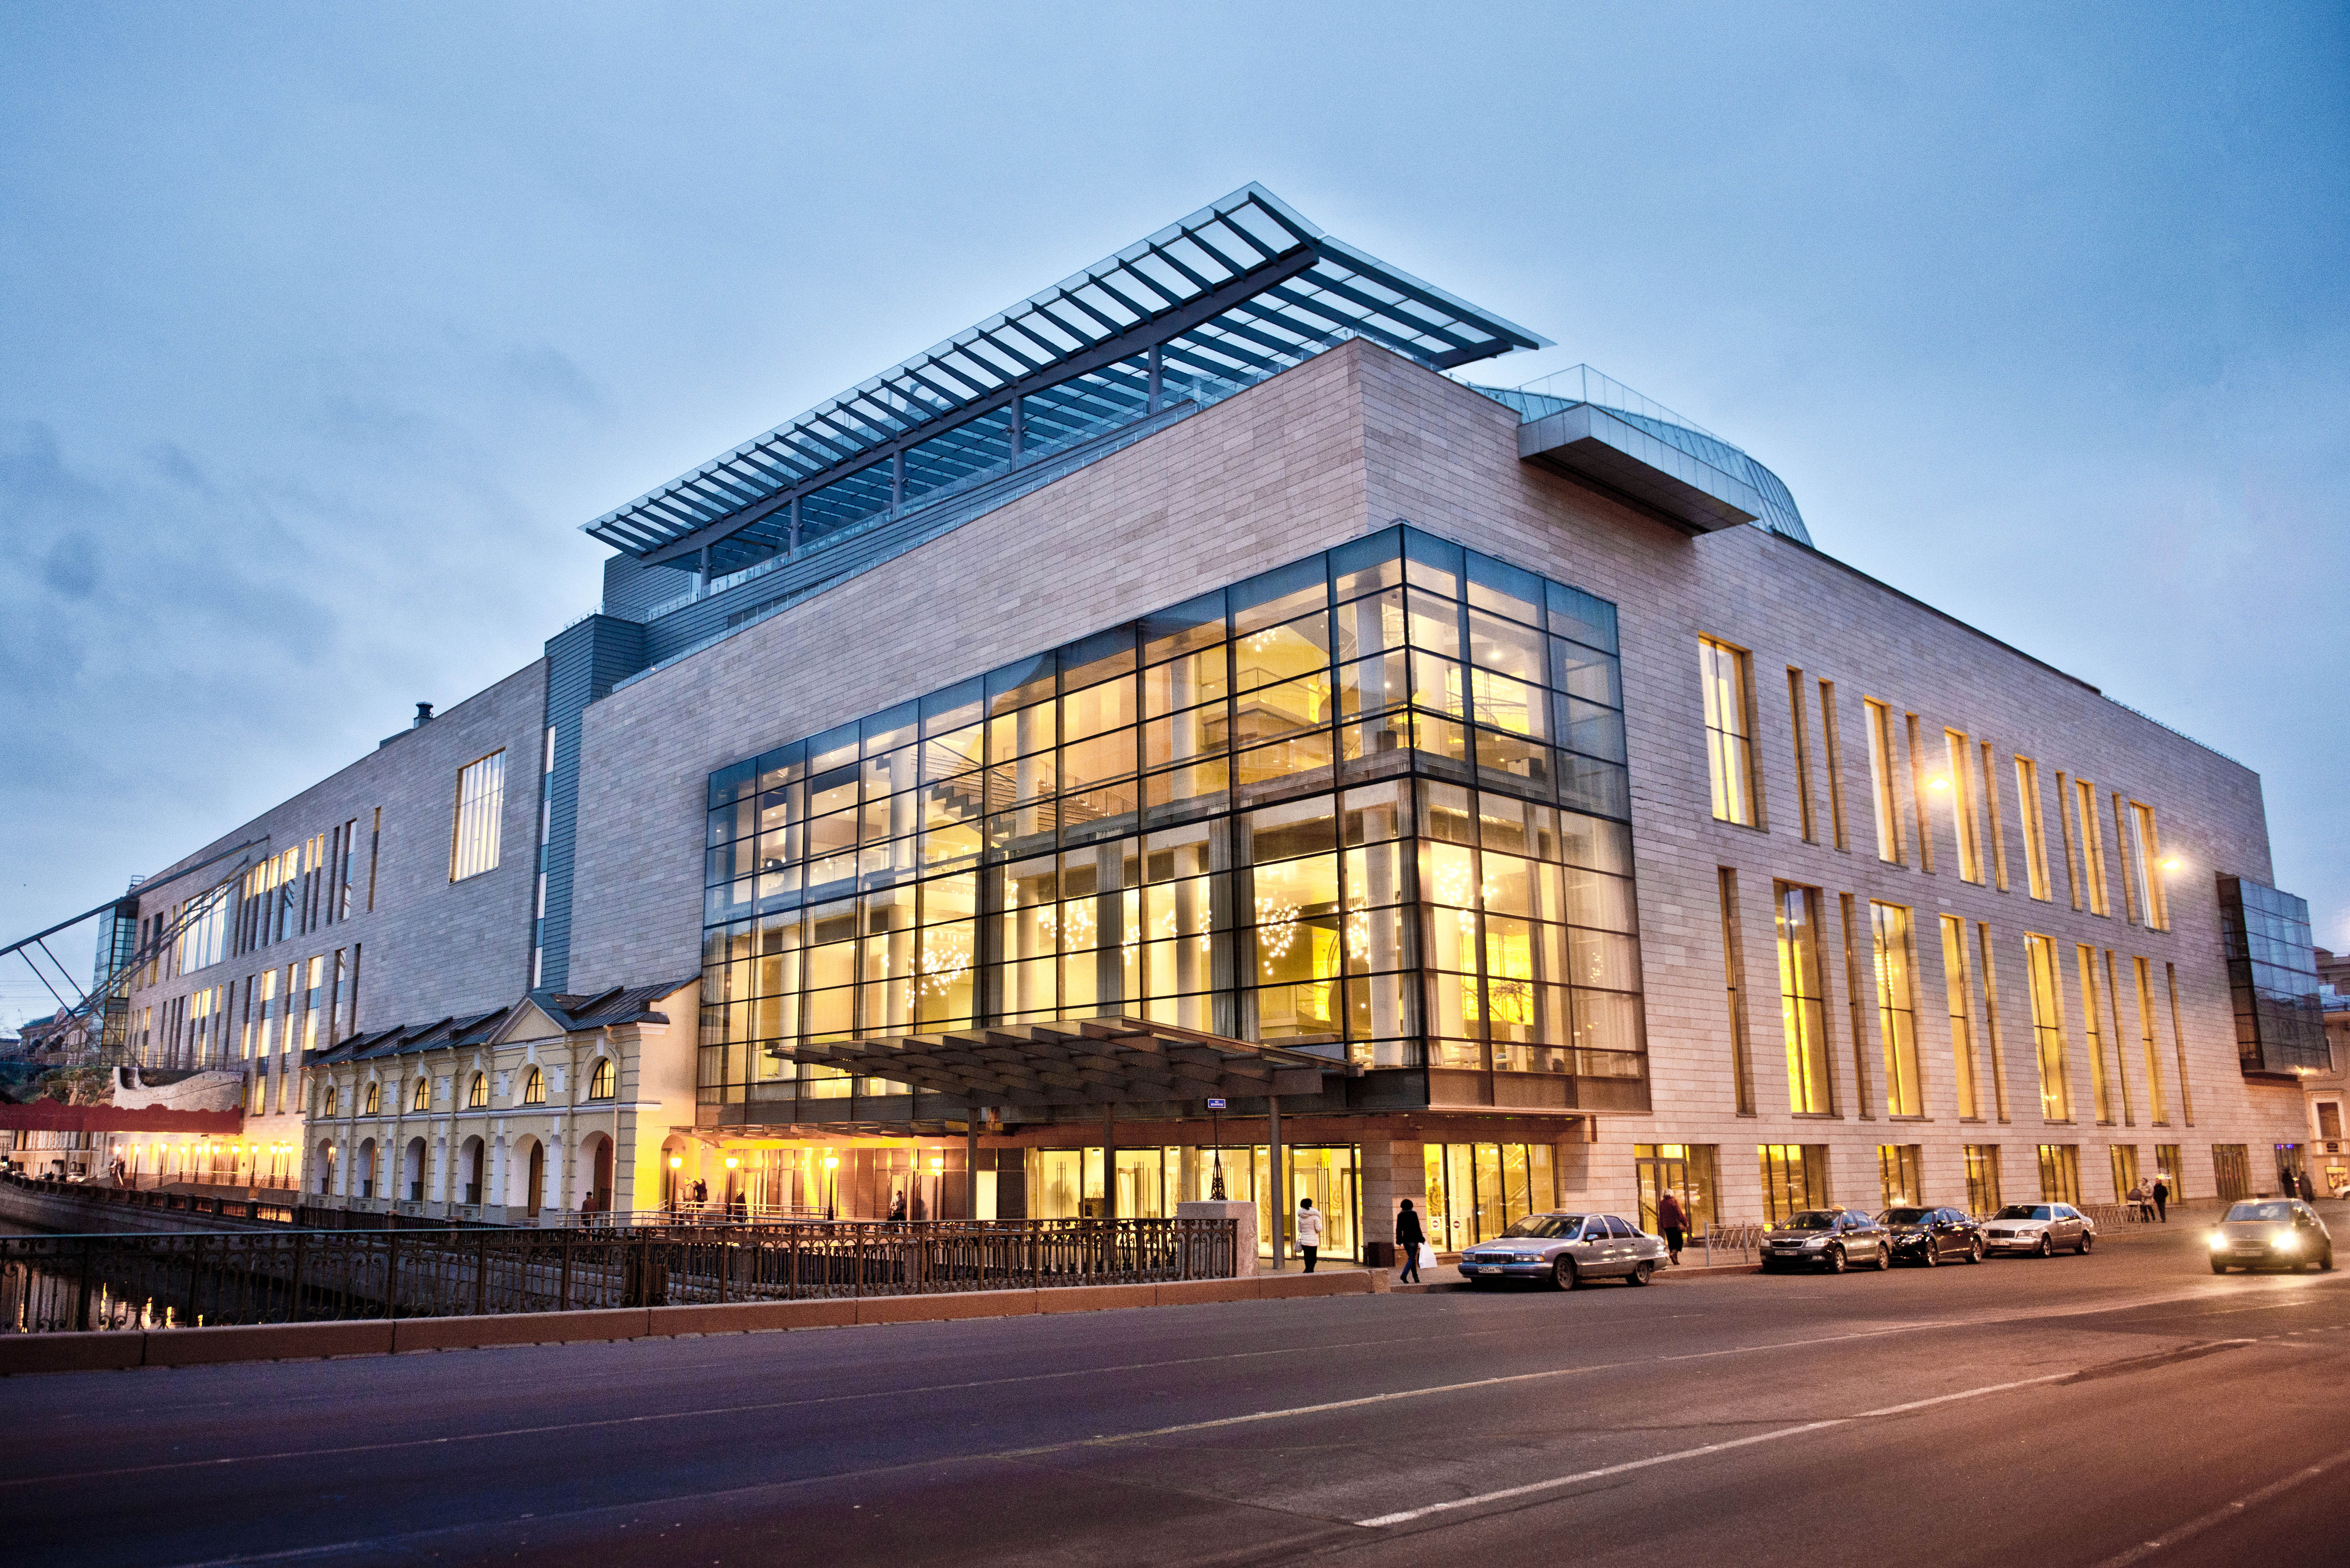 mariinsky theatre ii Mariinsky ii features seven stories and three underground levels, including a main auditorium, a 200-seat rooftop amphitheatre, a third-floor lobby amphitheatre, multiple rehearsal rooms, and production facilities for 2,500 staff.